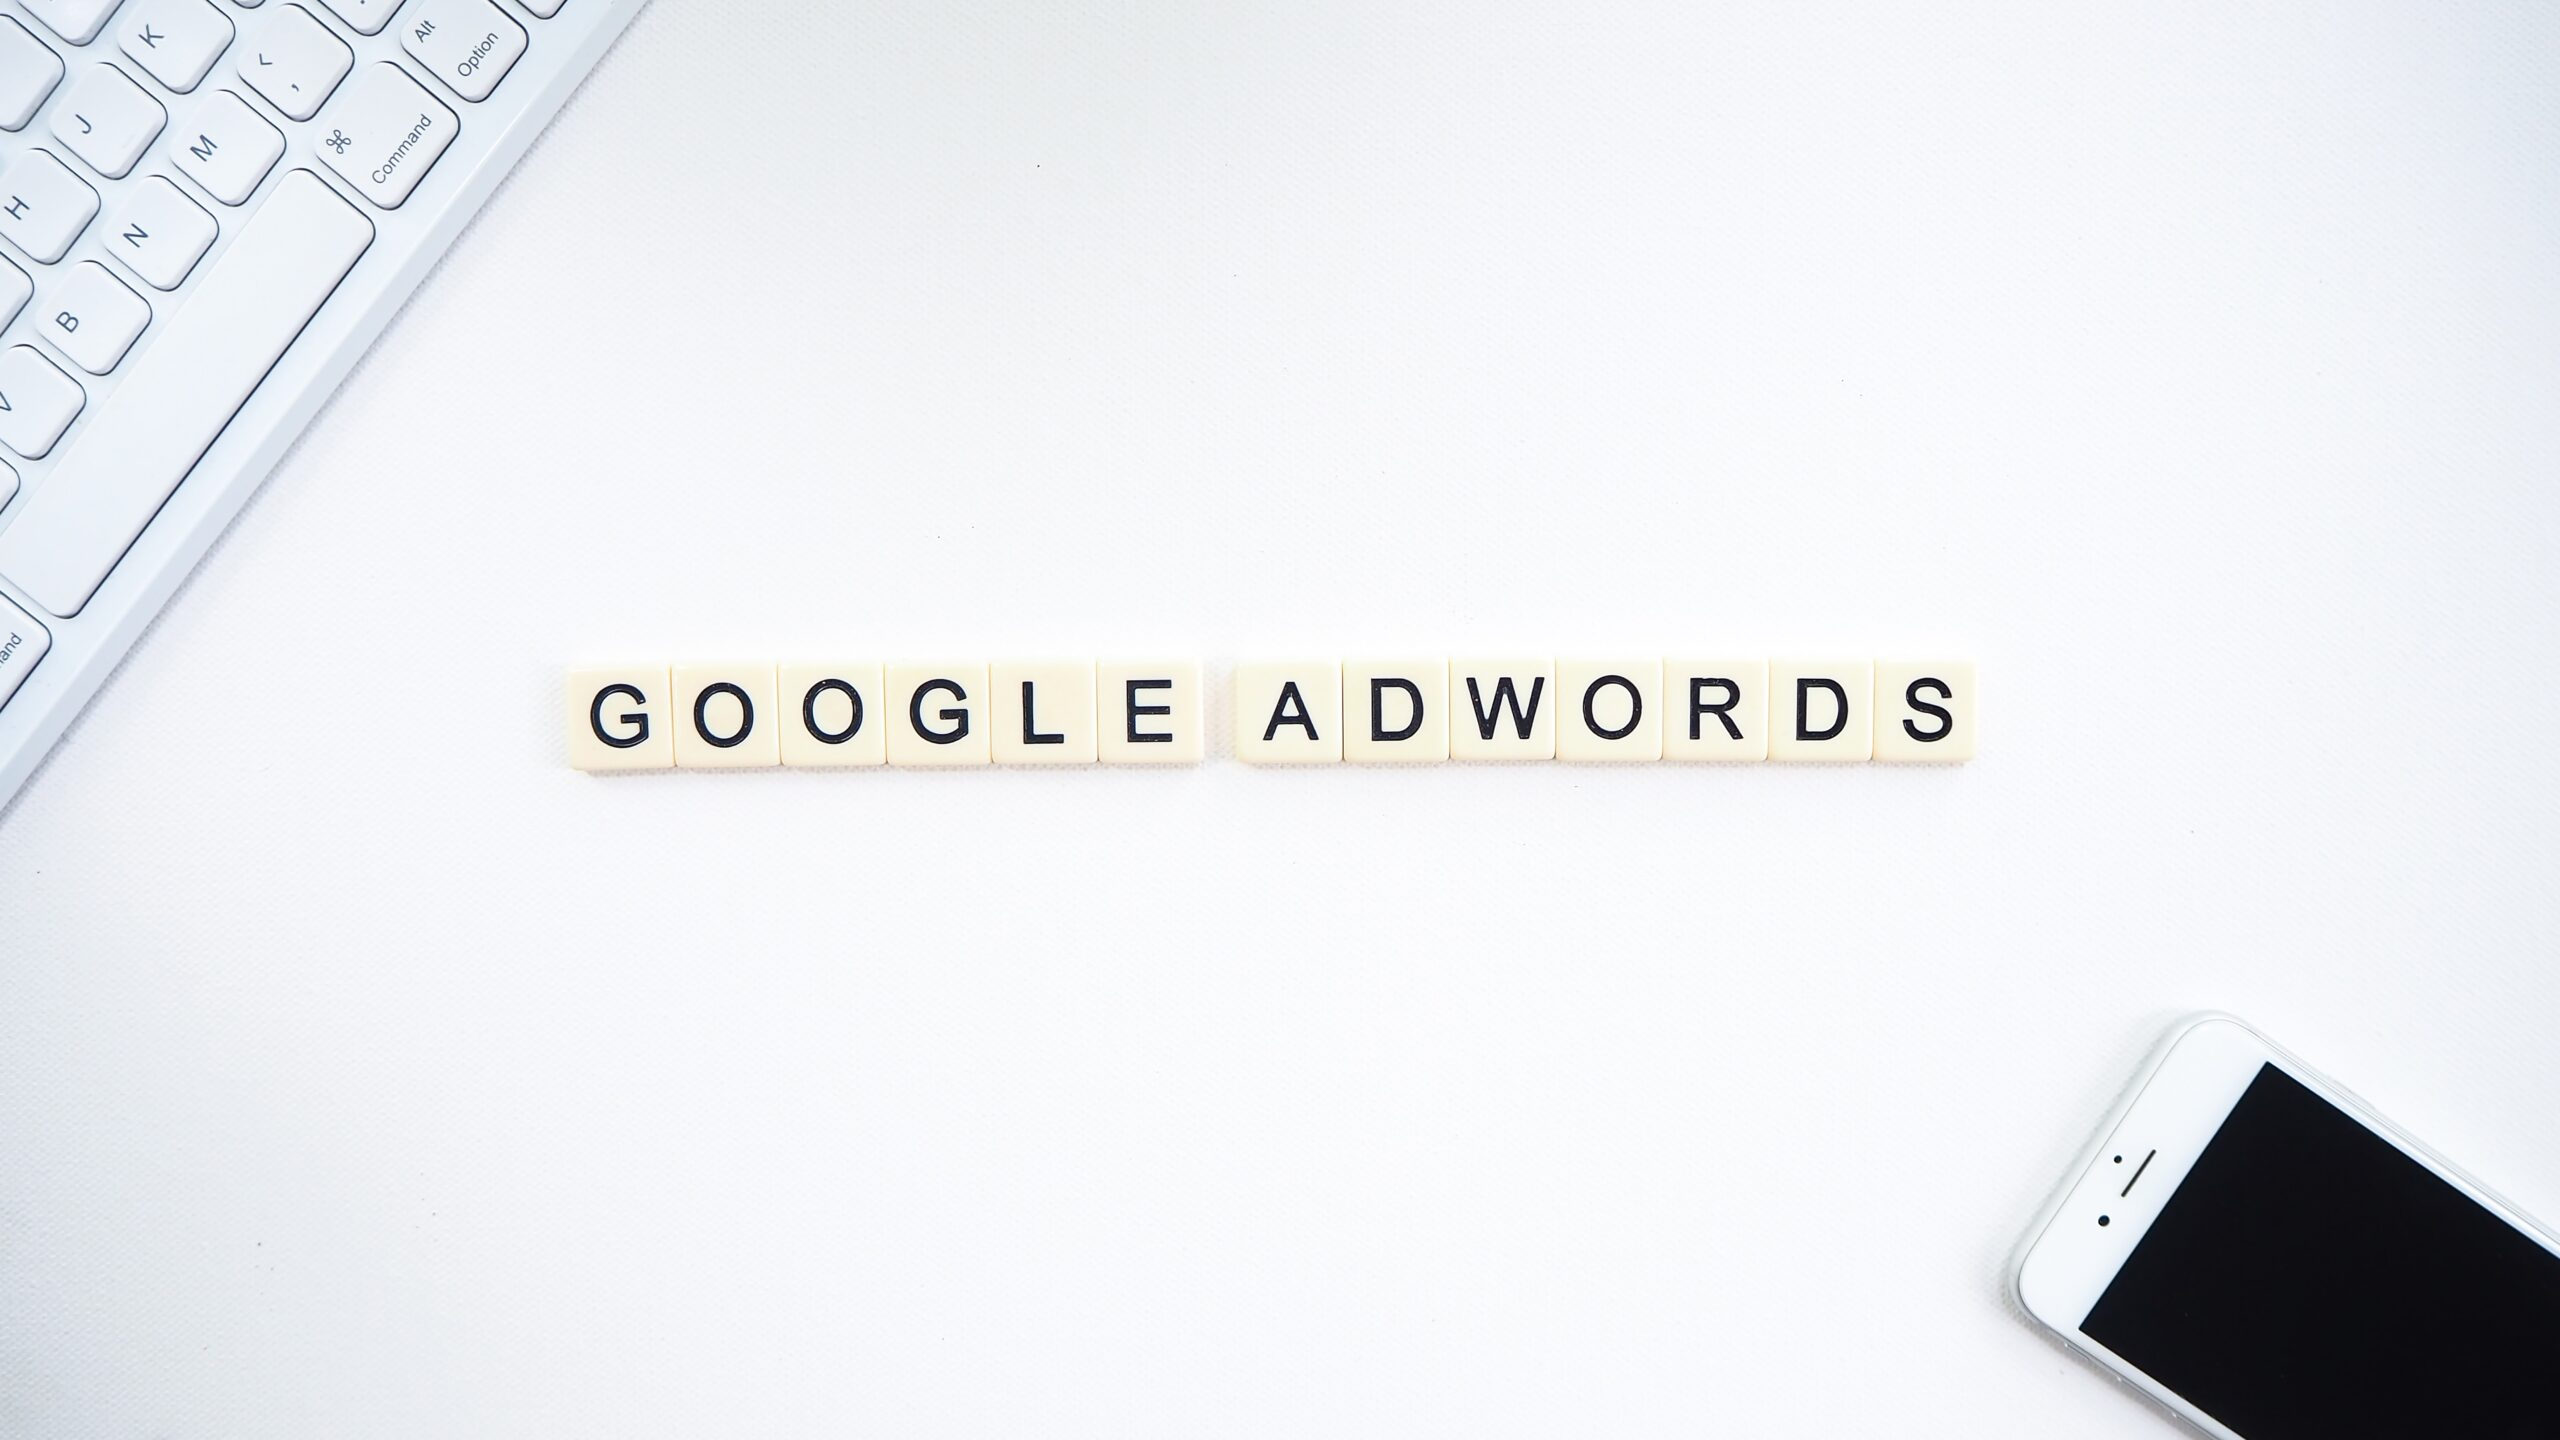 google adwords agency in indore